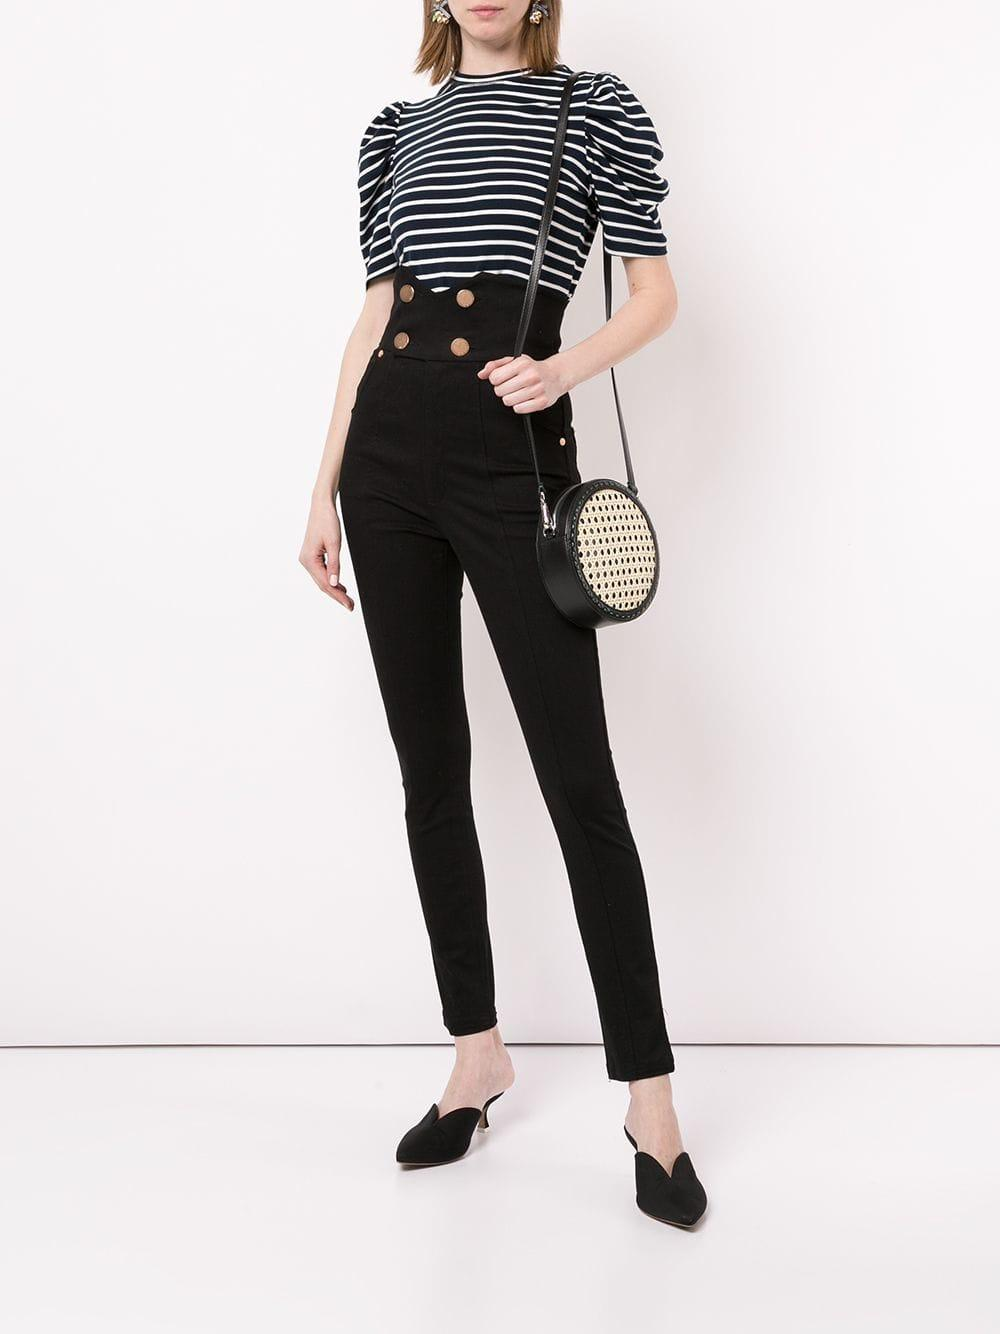 3c46b1bfa3 Lyst - Alice McCALL Shut The Front Jadore Jeans in Black - Save 52%